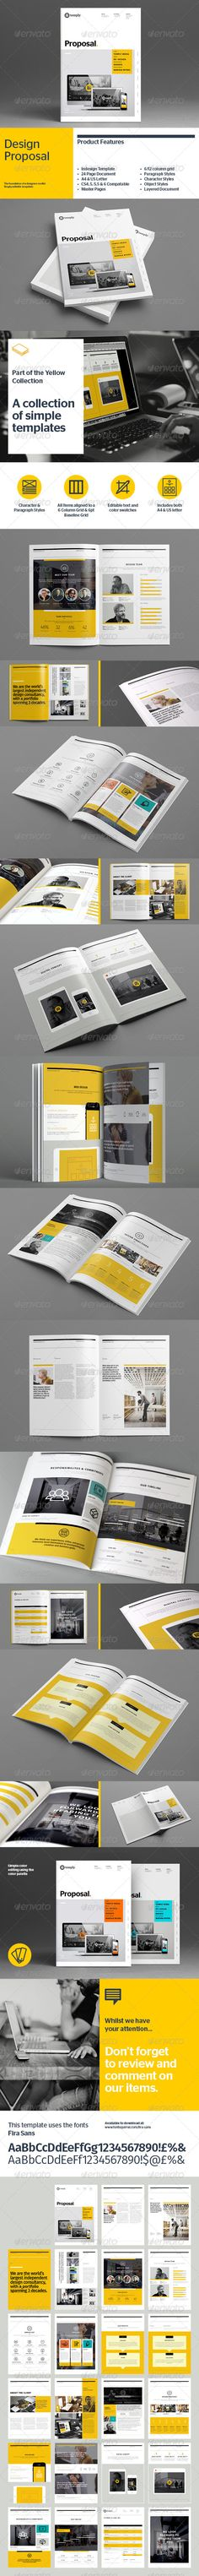 proposal report template%0A Proposal Template